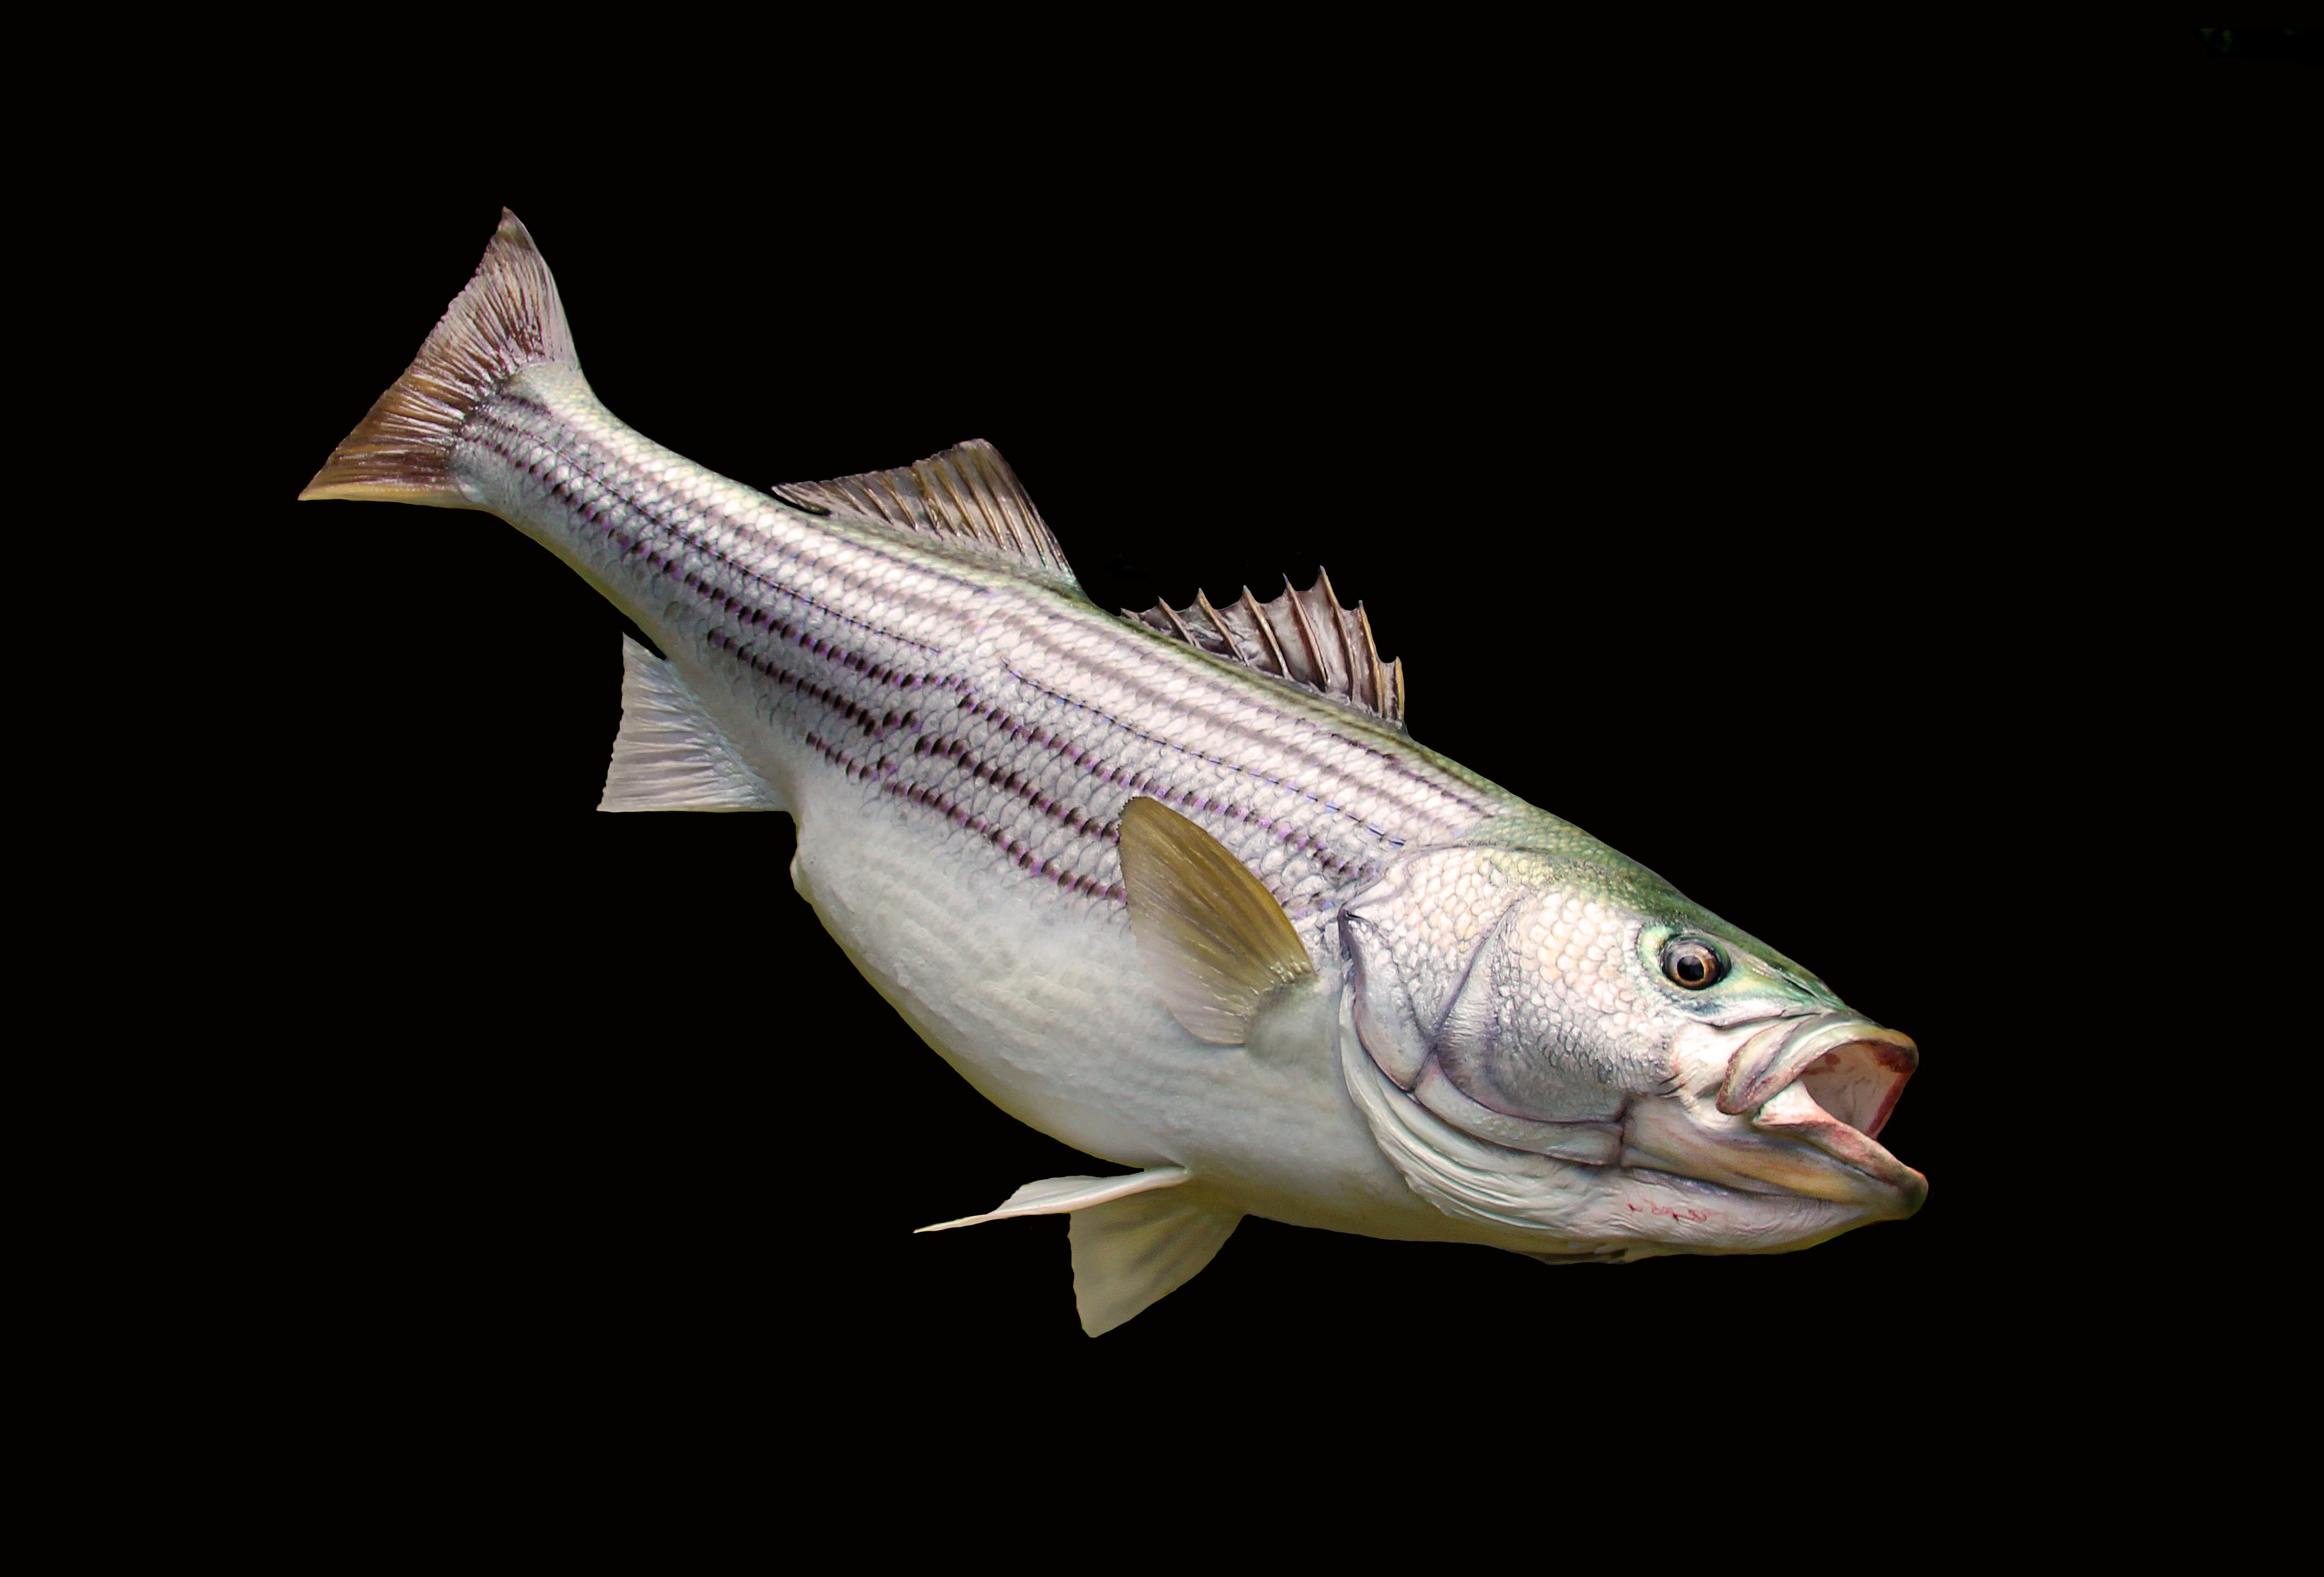 Lake Country Replicas : Anglers Artistry, The Art of